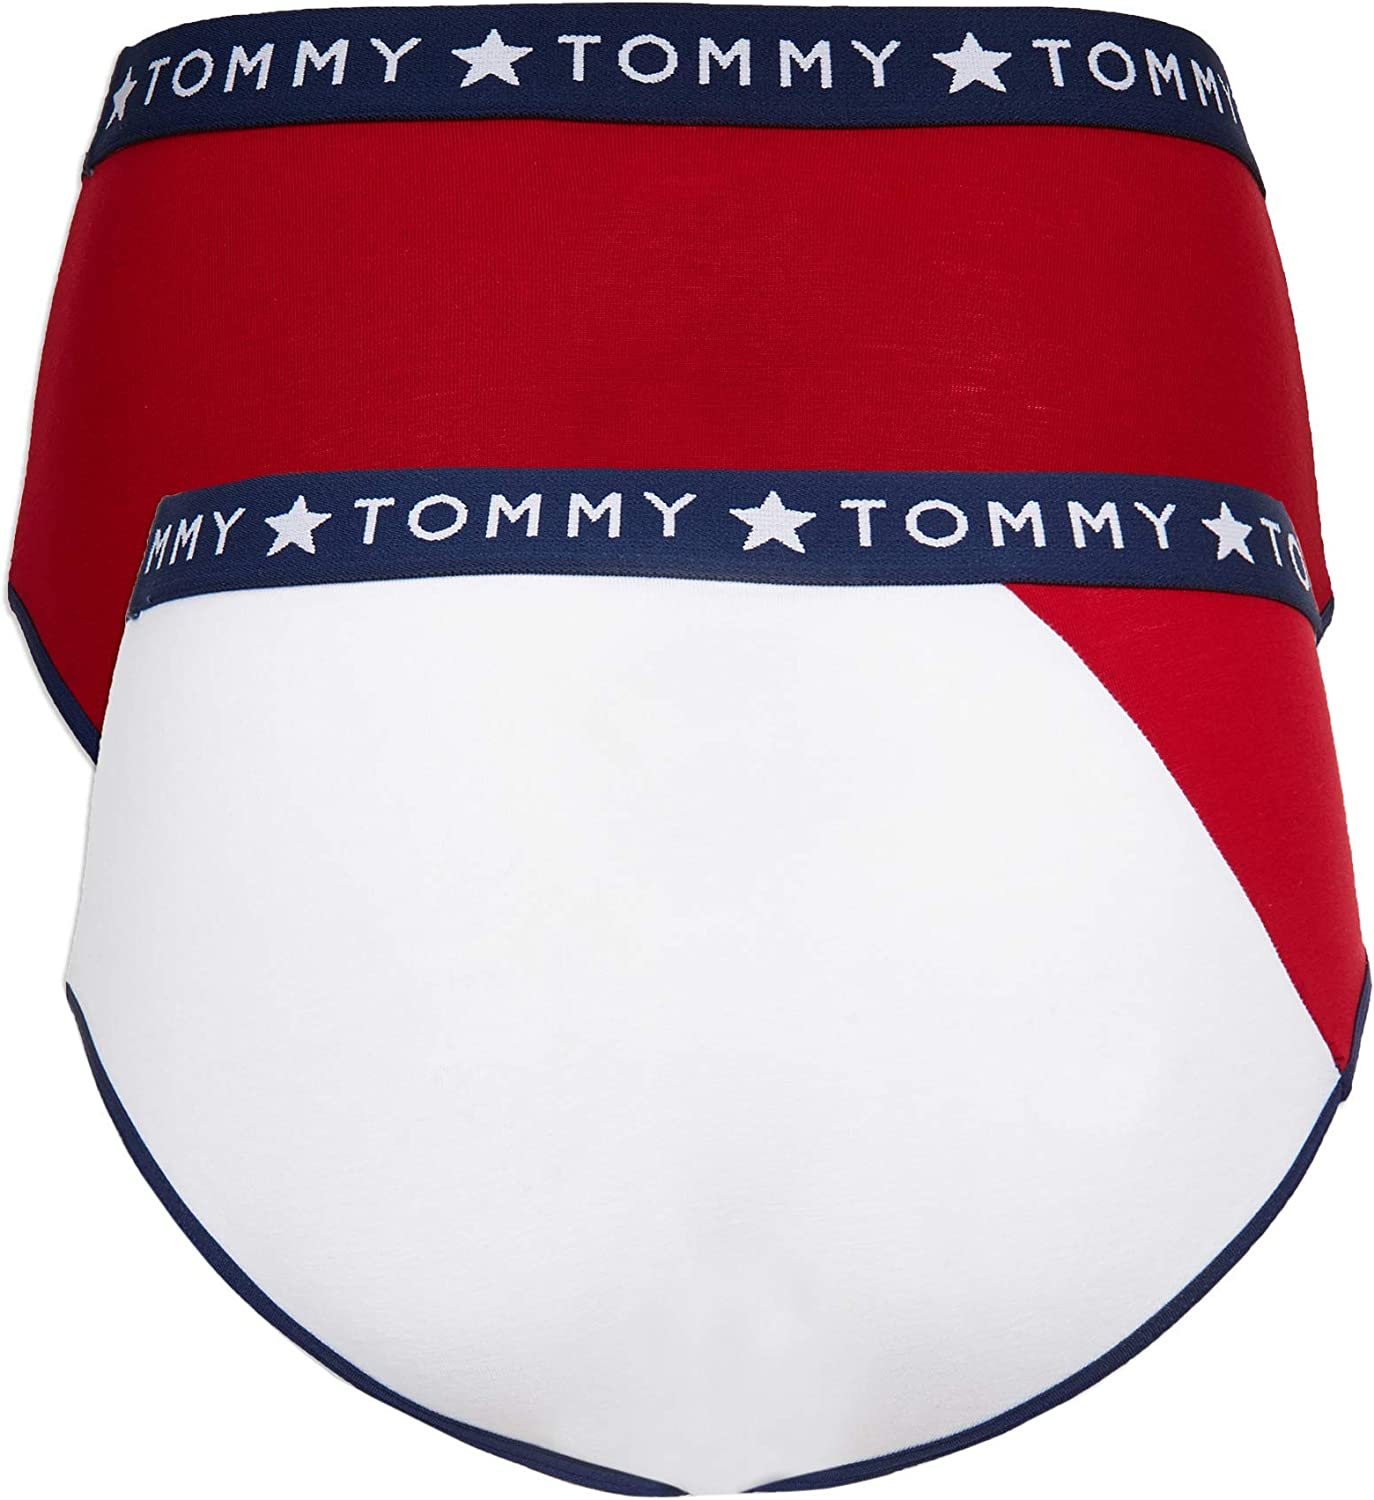 Tommy Hilfiger Girls Girls Hipster Hipster Panties Pack of 2